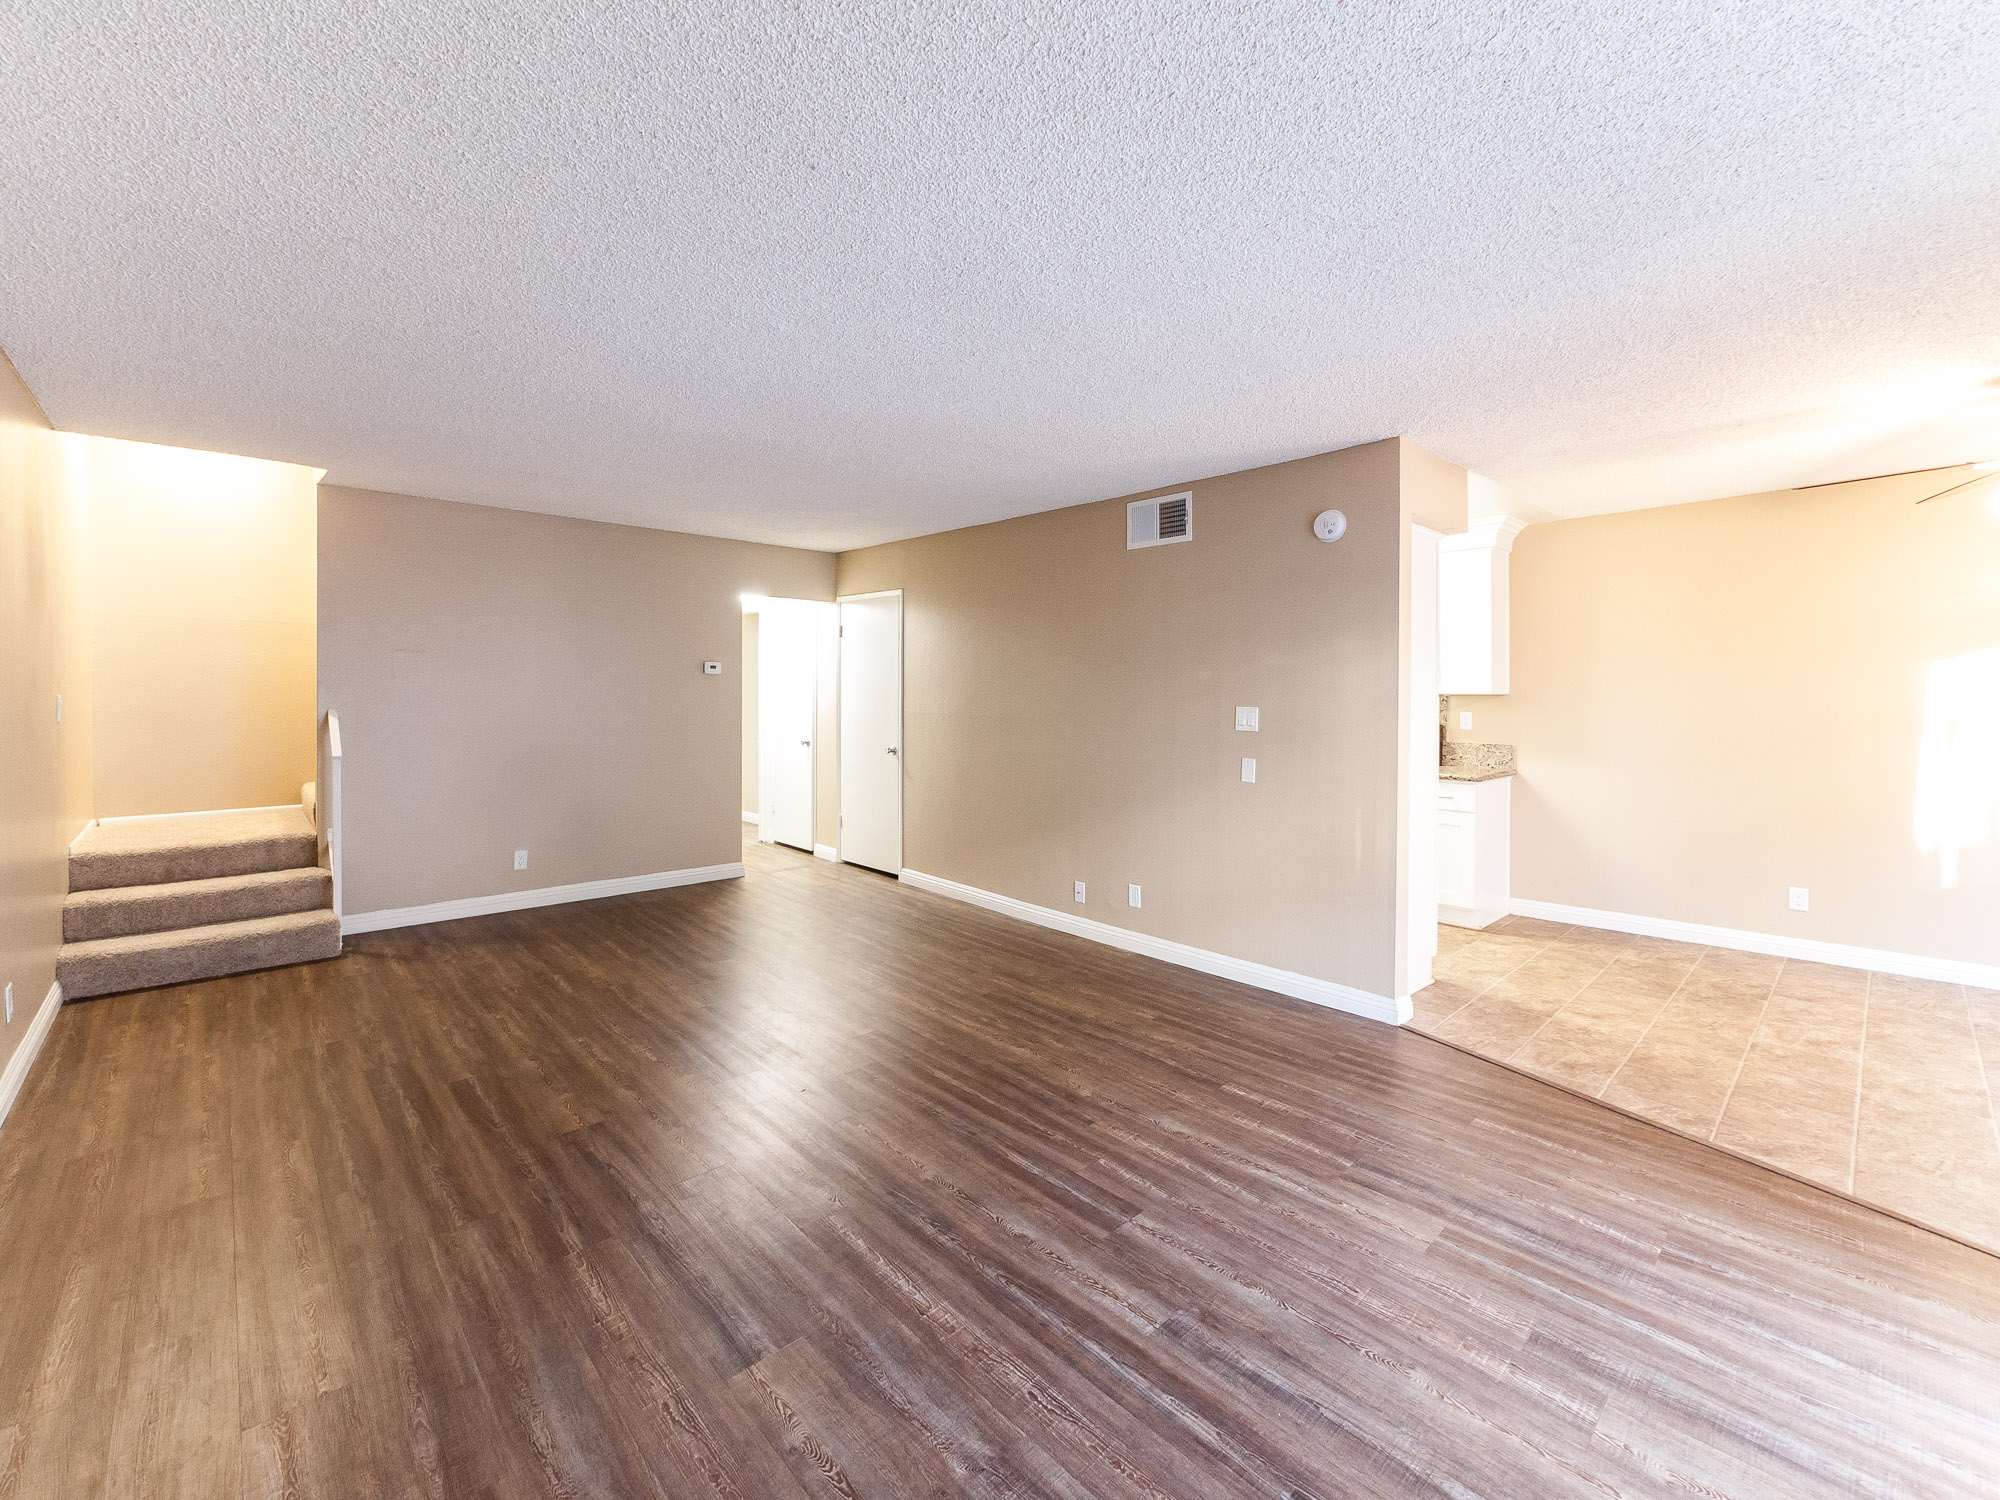 EXTRA LARGE TWO-STORY TOWN-HOME STYLE APARTMENT IN GLENDALE! 4 bedrooms / 2 bathrooms! Pool!